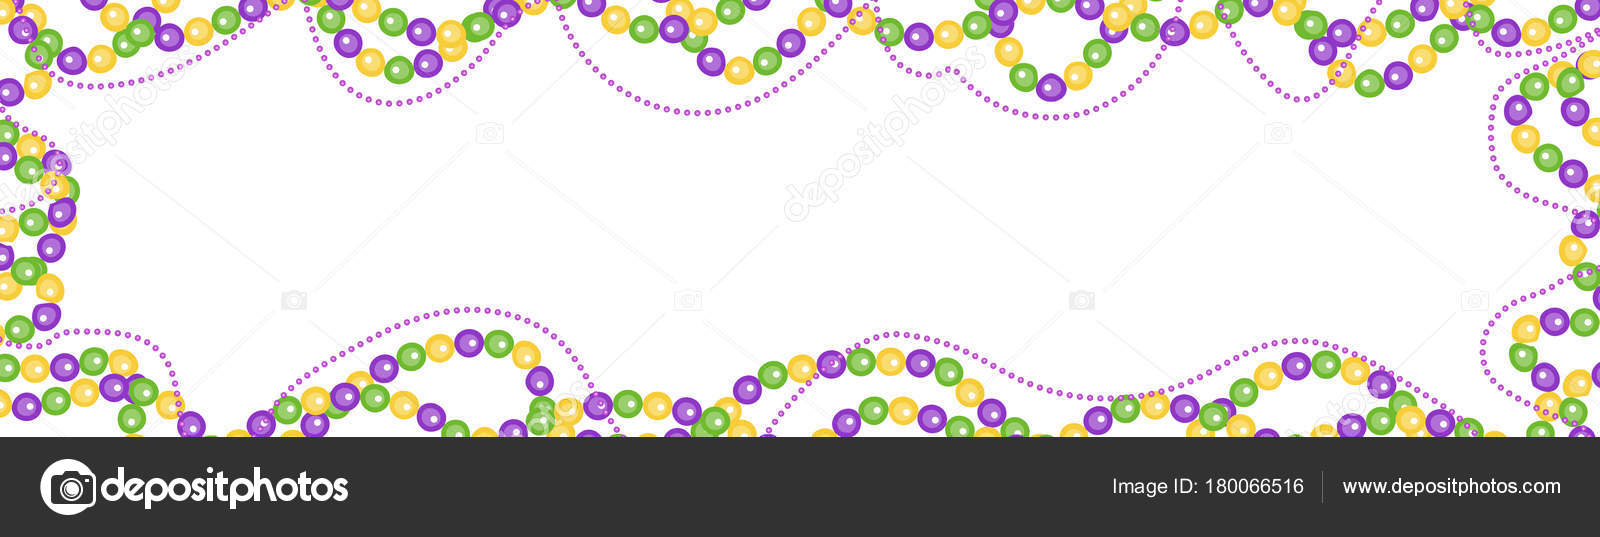 Mardi Gras beads colored frame, isolated on white background ...